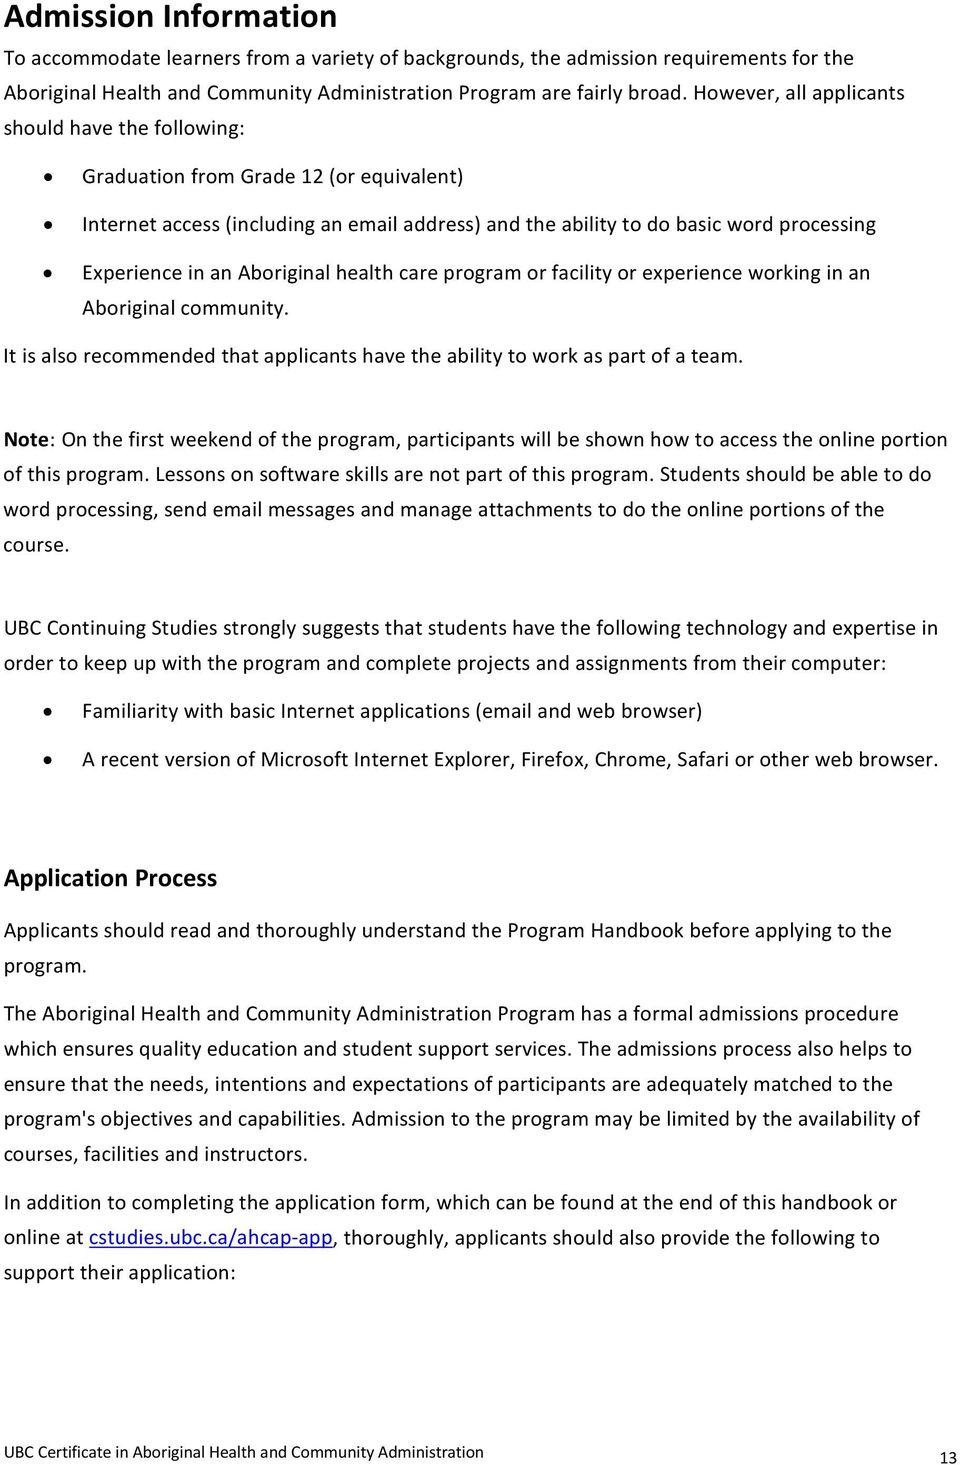 Aboriginal health care program or facility or experience working in an Aboriginal community. It is also recommended that applicants have the ability to work as part of a team.